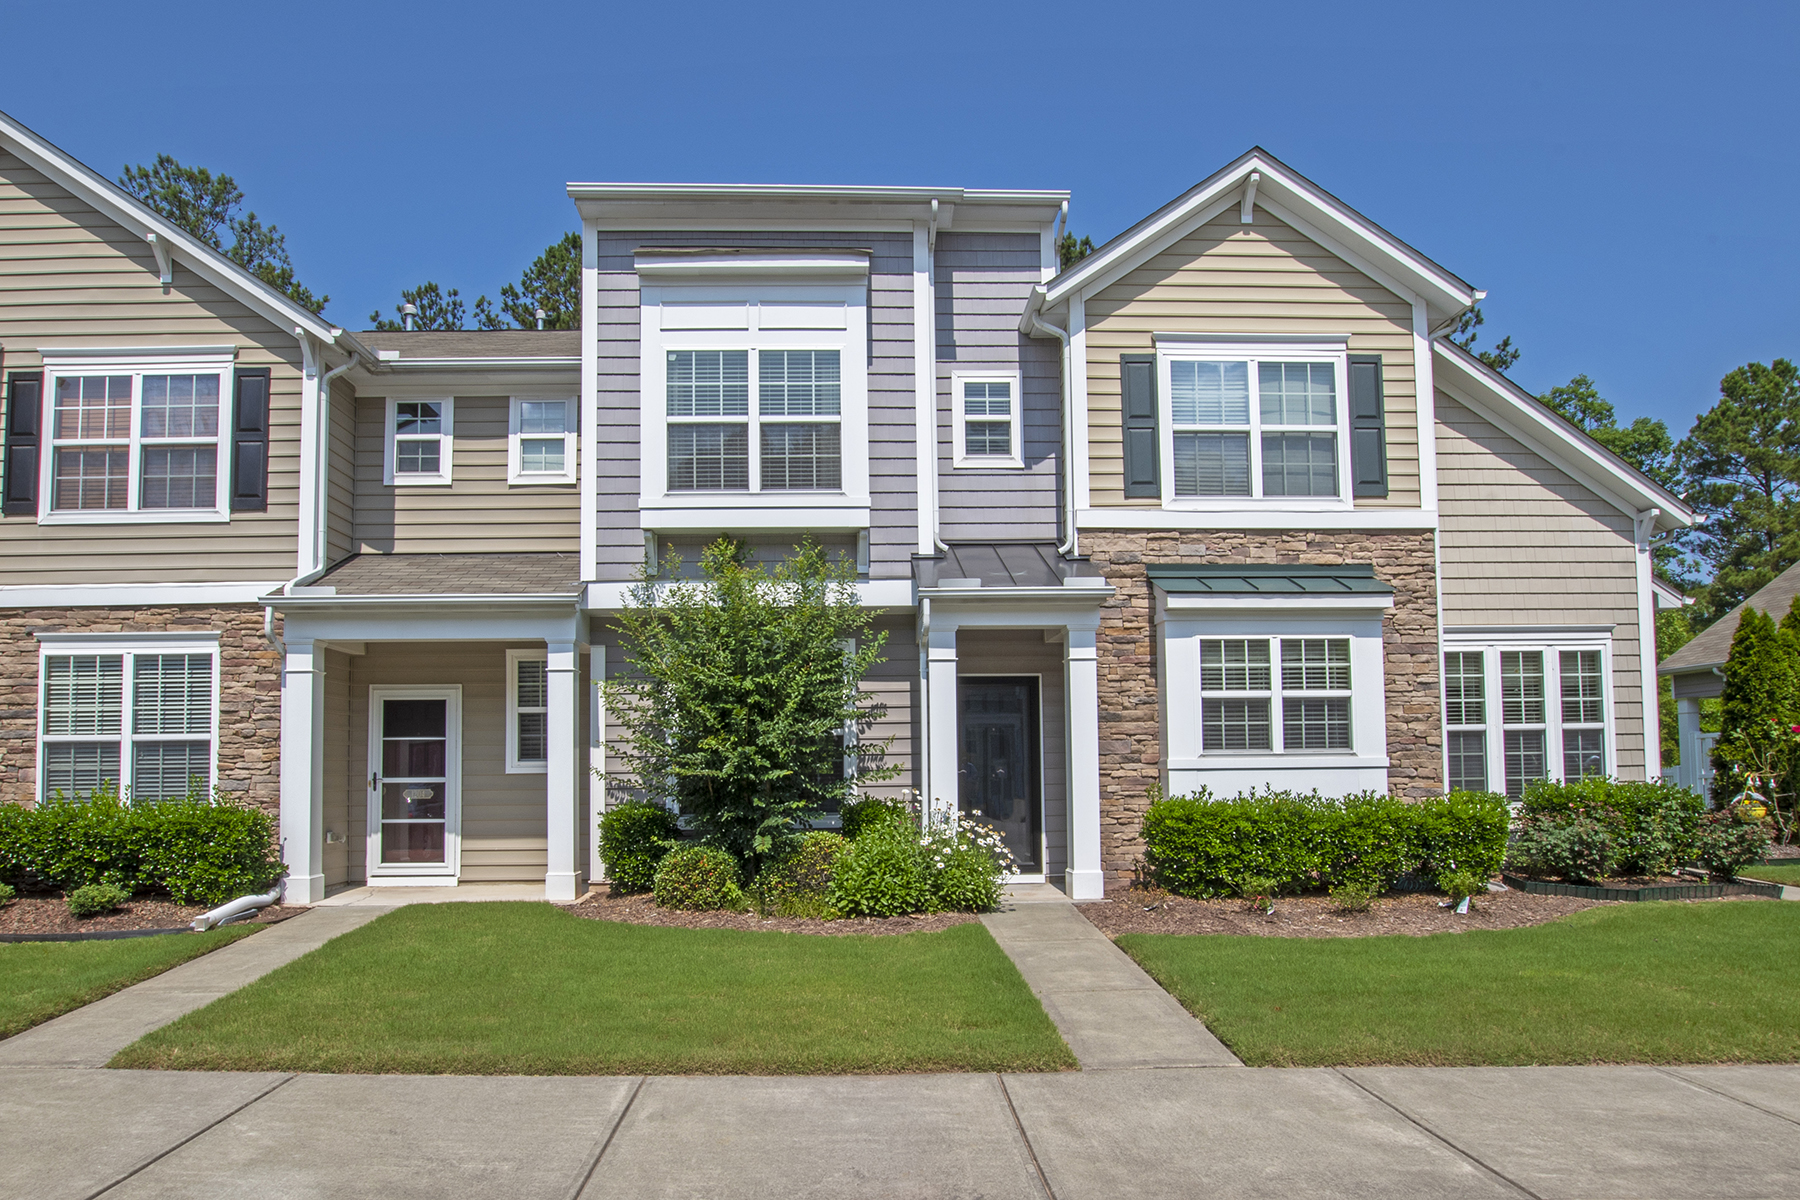 Townhouse/Row House for sale in 1202 Denmark Manor Dr, Morrisville, NC ,27560